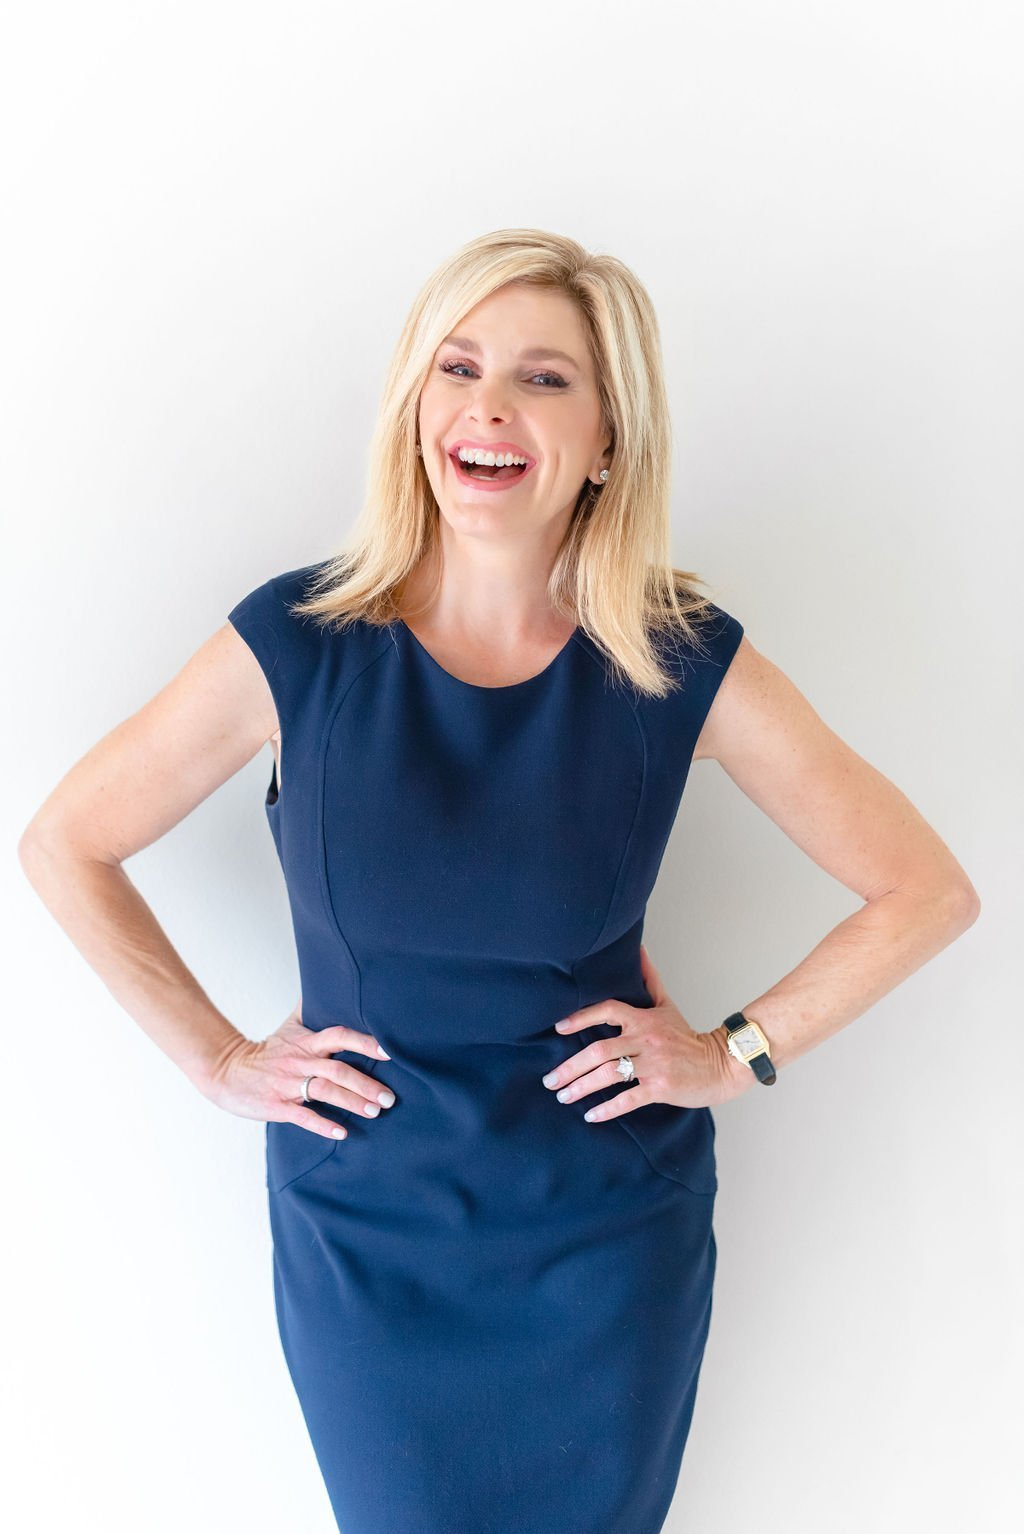 Best Influencers Over 40, Including Tanya Foster from Tanya Foster Blog